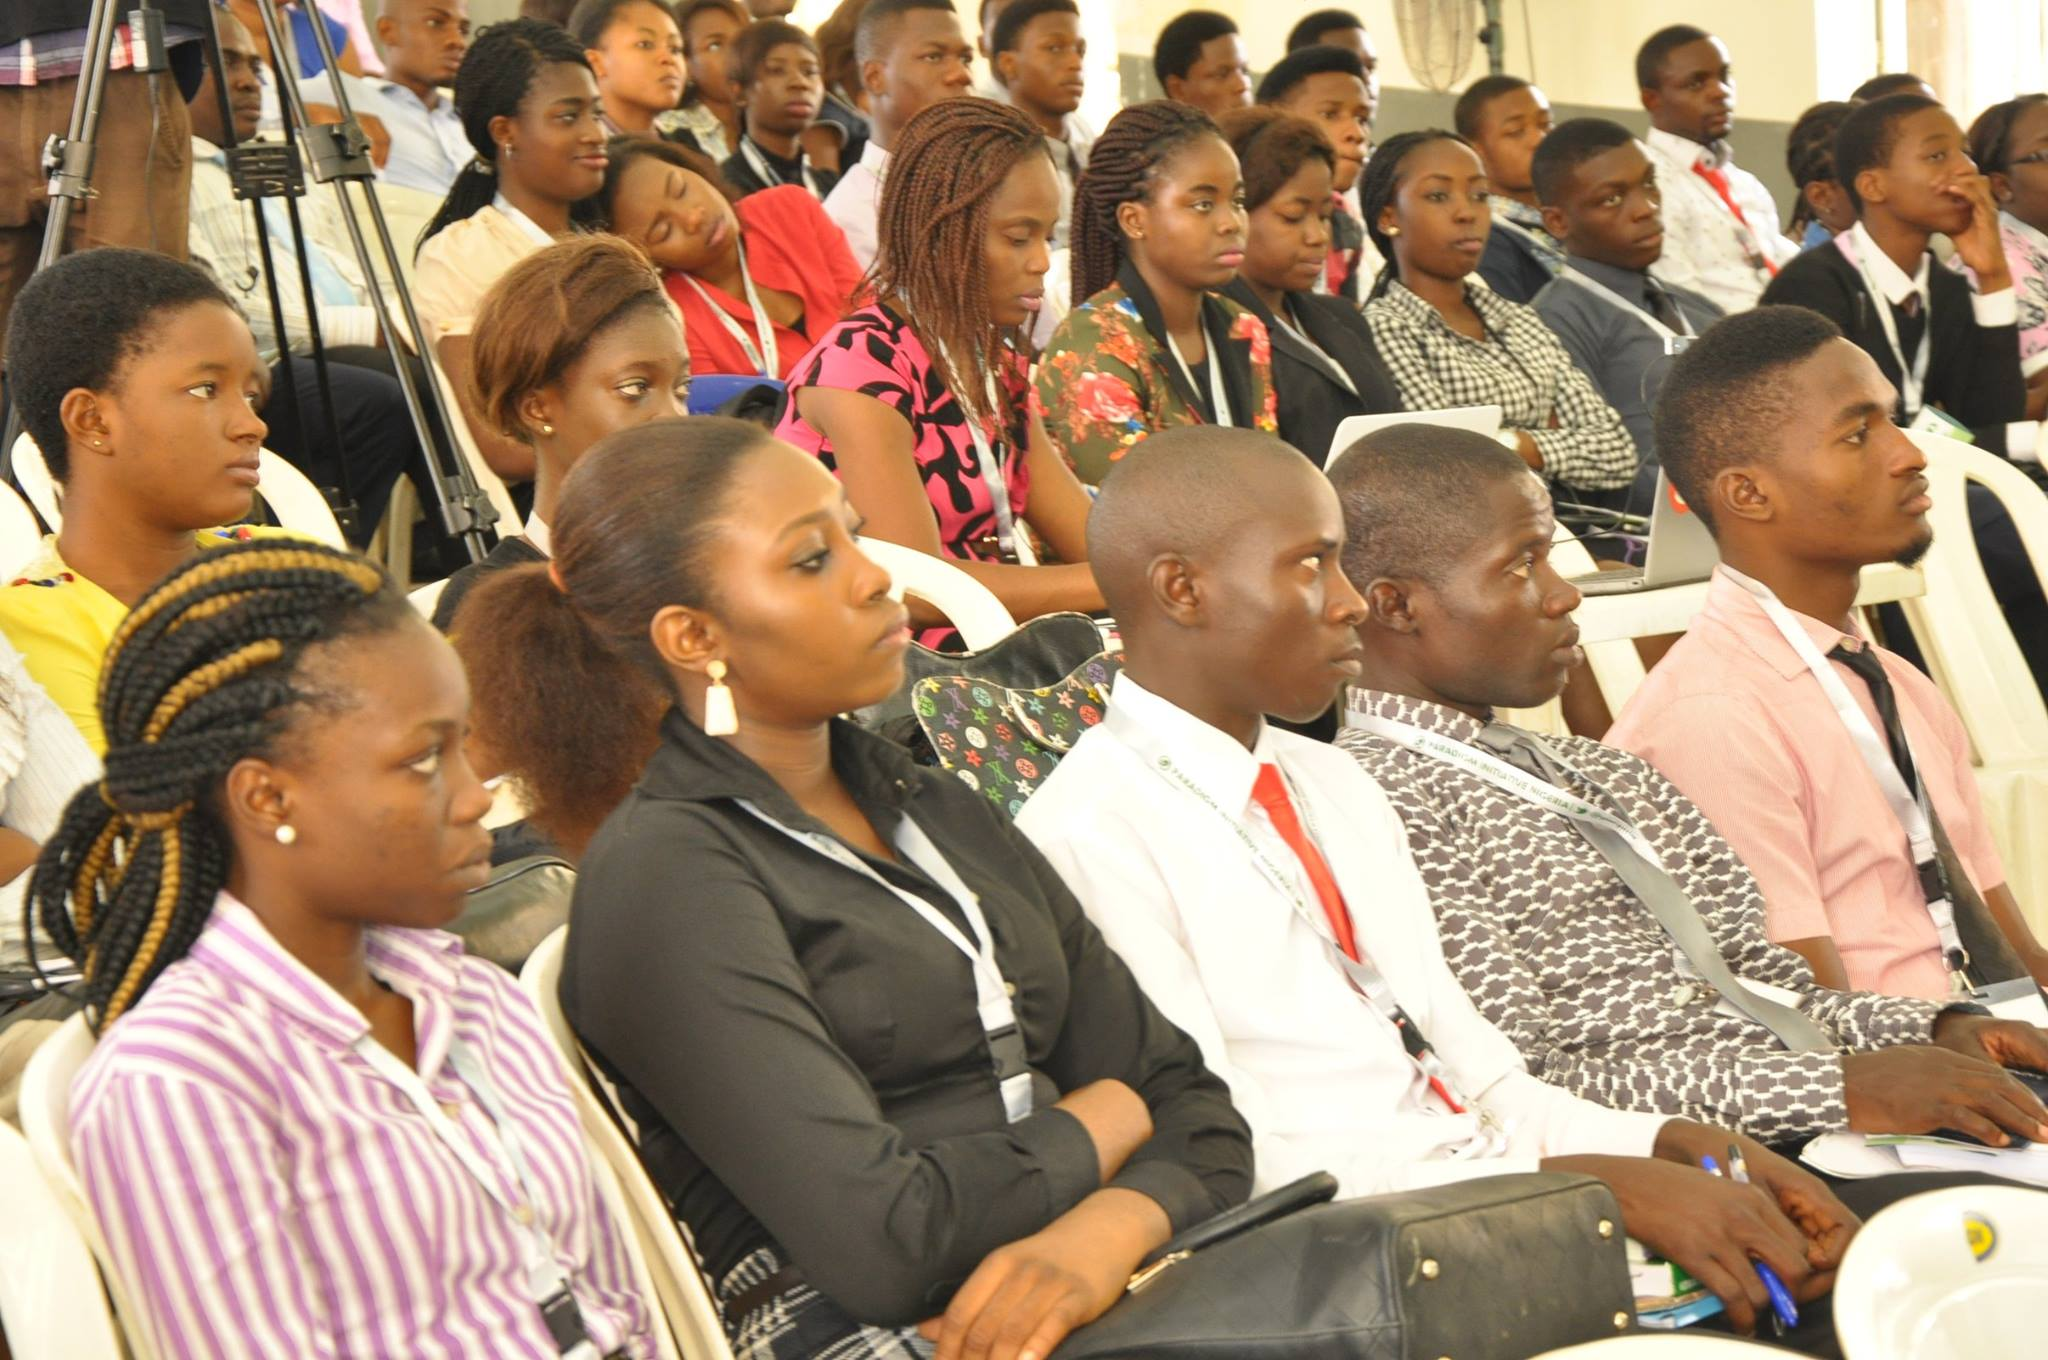 Group advocates good governance for Nigerians